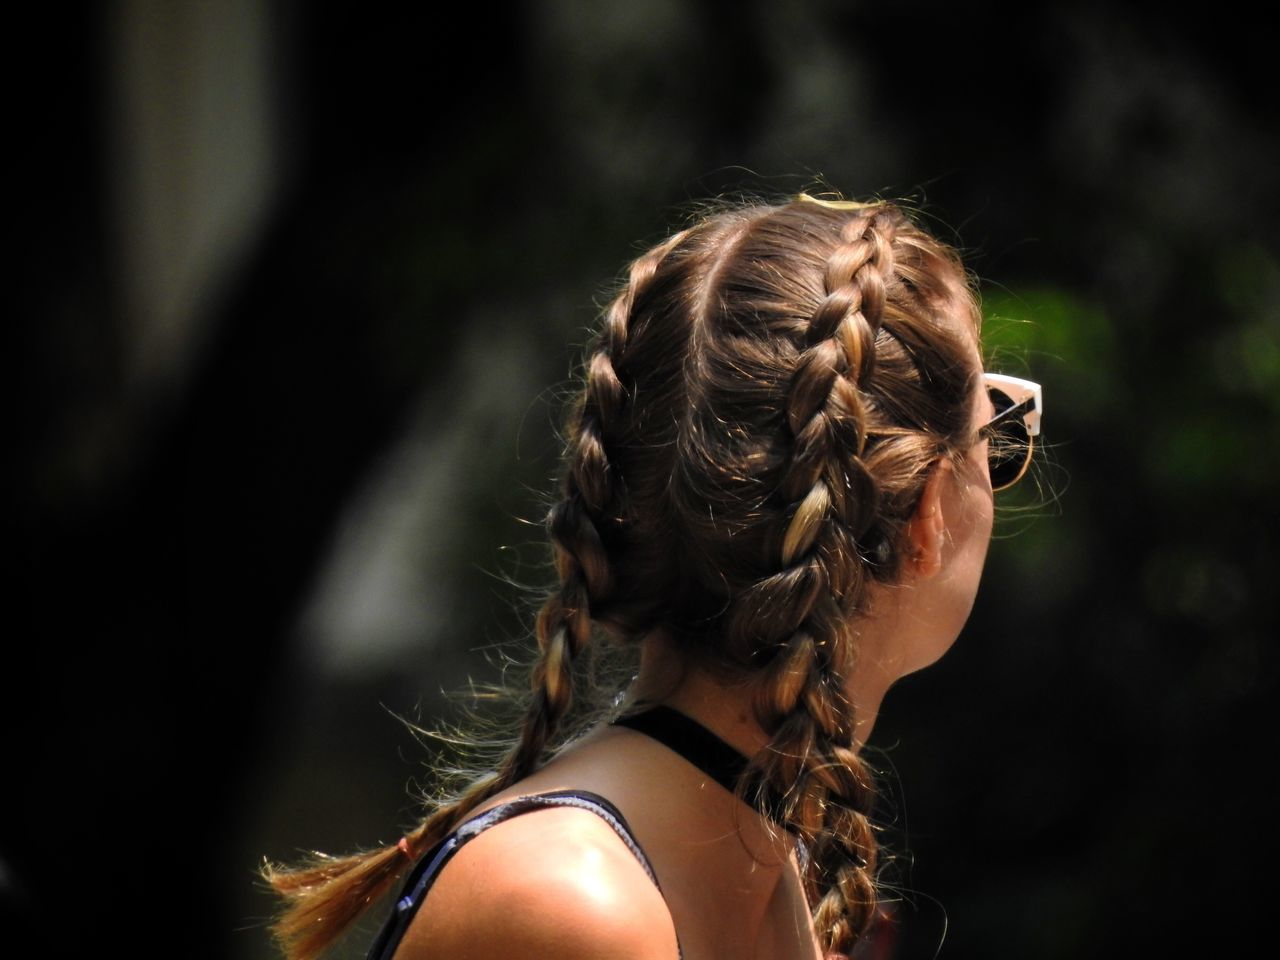 real people, rear view, one person, focus on foreground, headshot, hair bun, lifestyles, leisure activity, outdoors, day, women, young adult, young women, close-up, blond hair, people